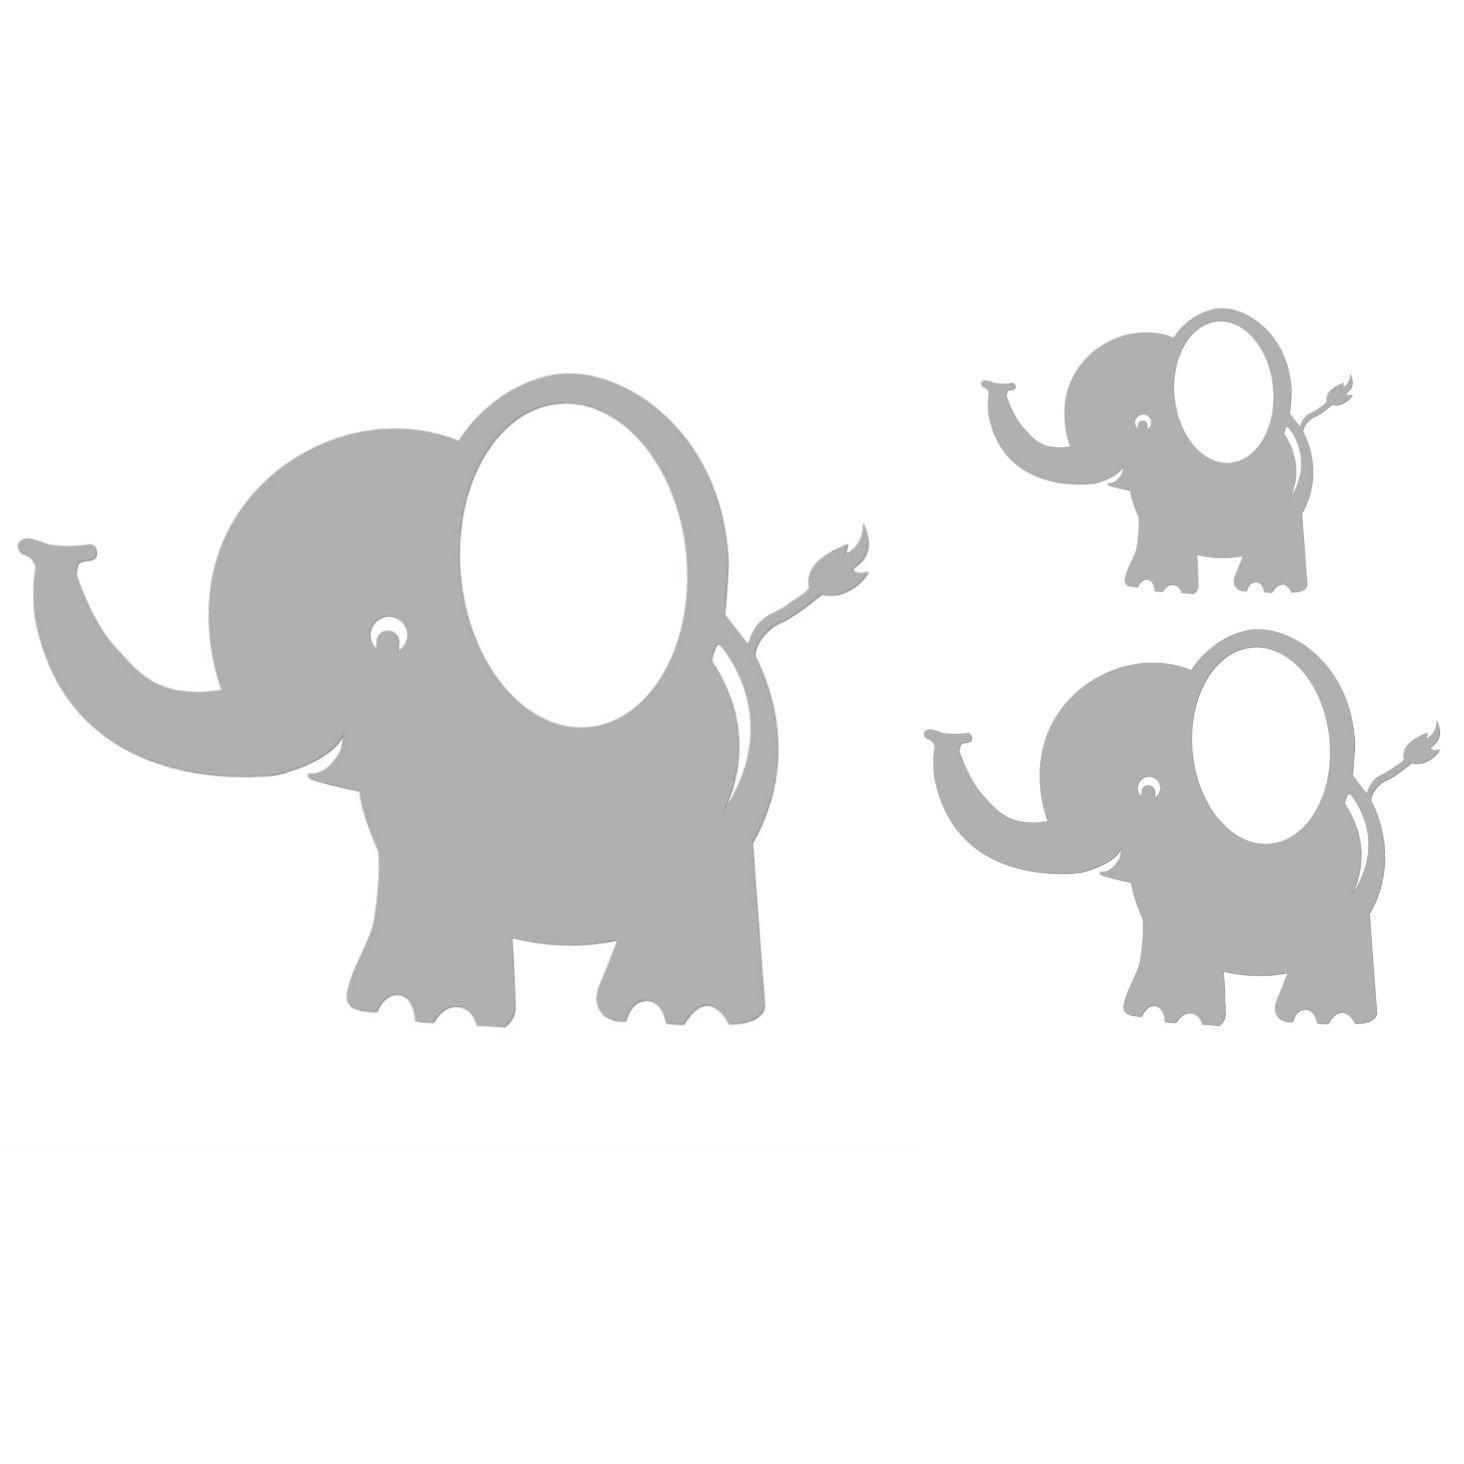 Baby elephant wall decal stacked elephants wall decal wall decal c bobee baby elephant wall decals for kids room decor nursery elephant wall decal amipublicfo Images